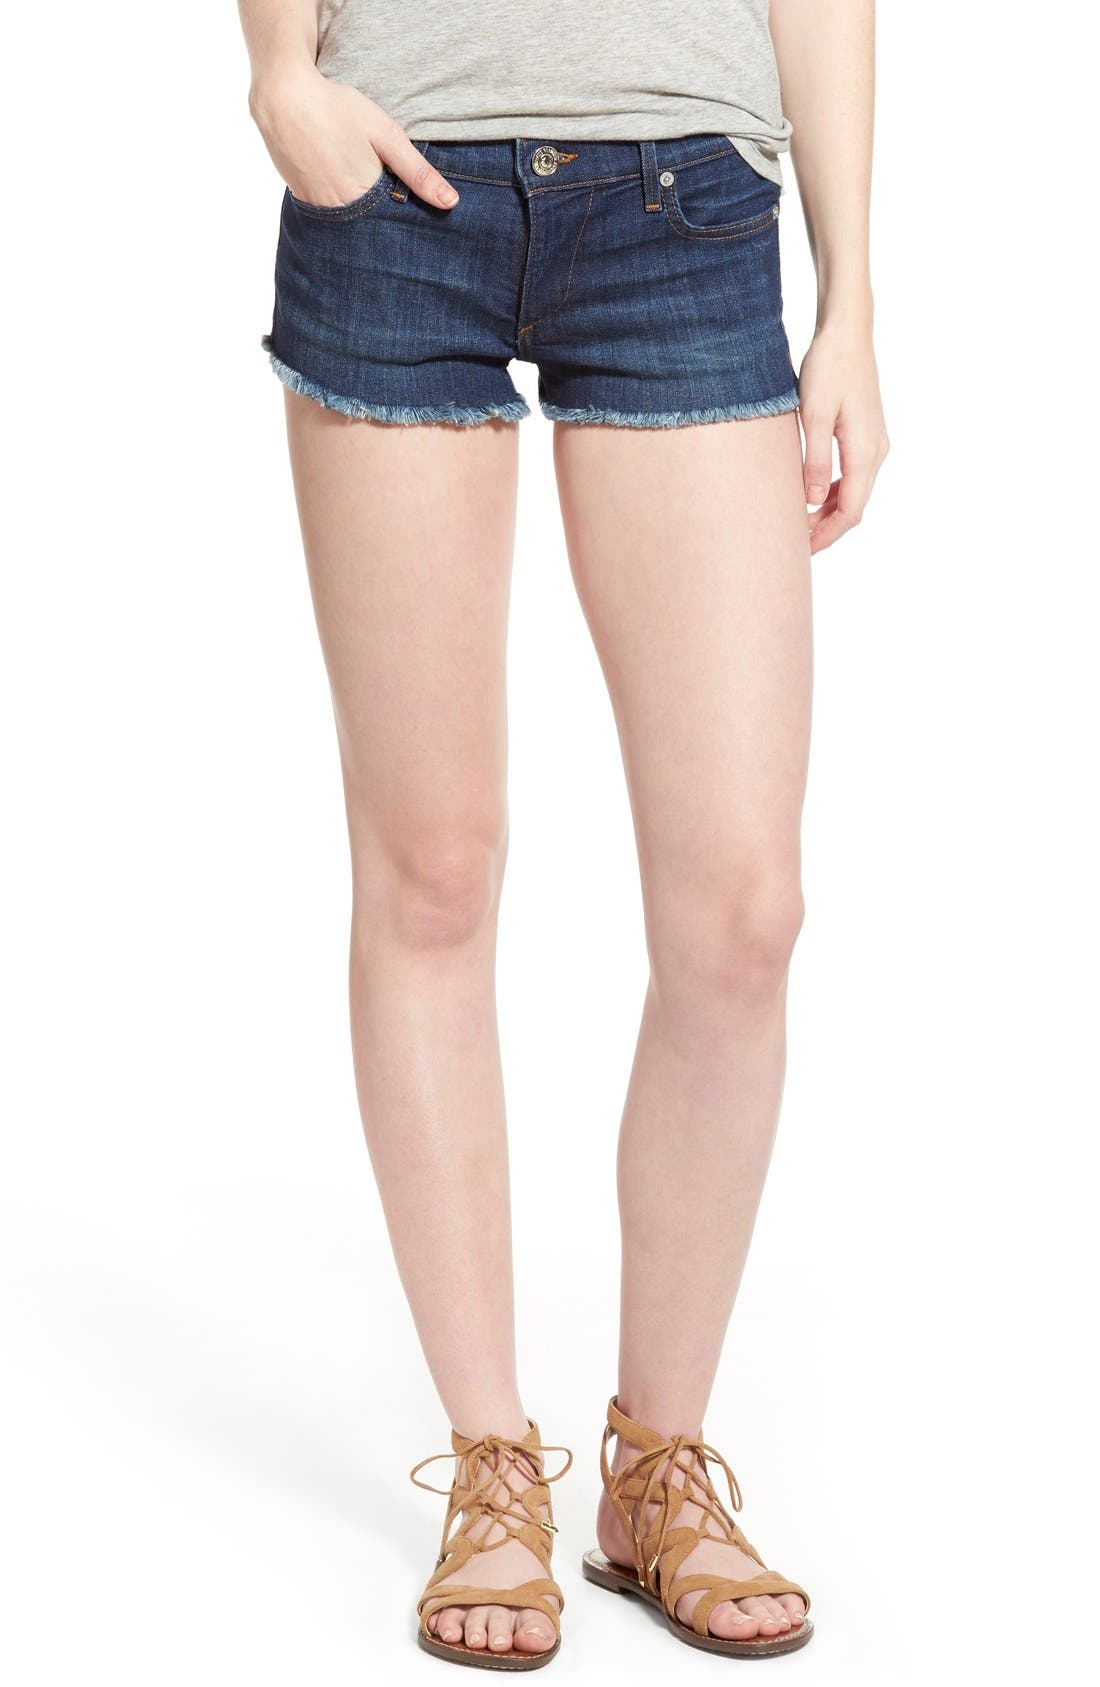 Joey Flap Pocket Cutoff Denim Shorts,                         Main,                         color, Worn Vintage